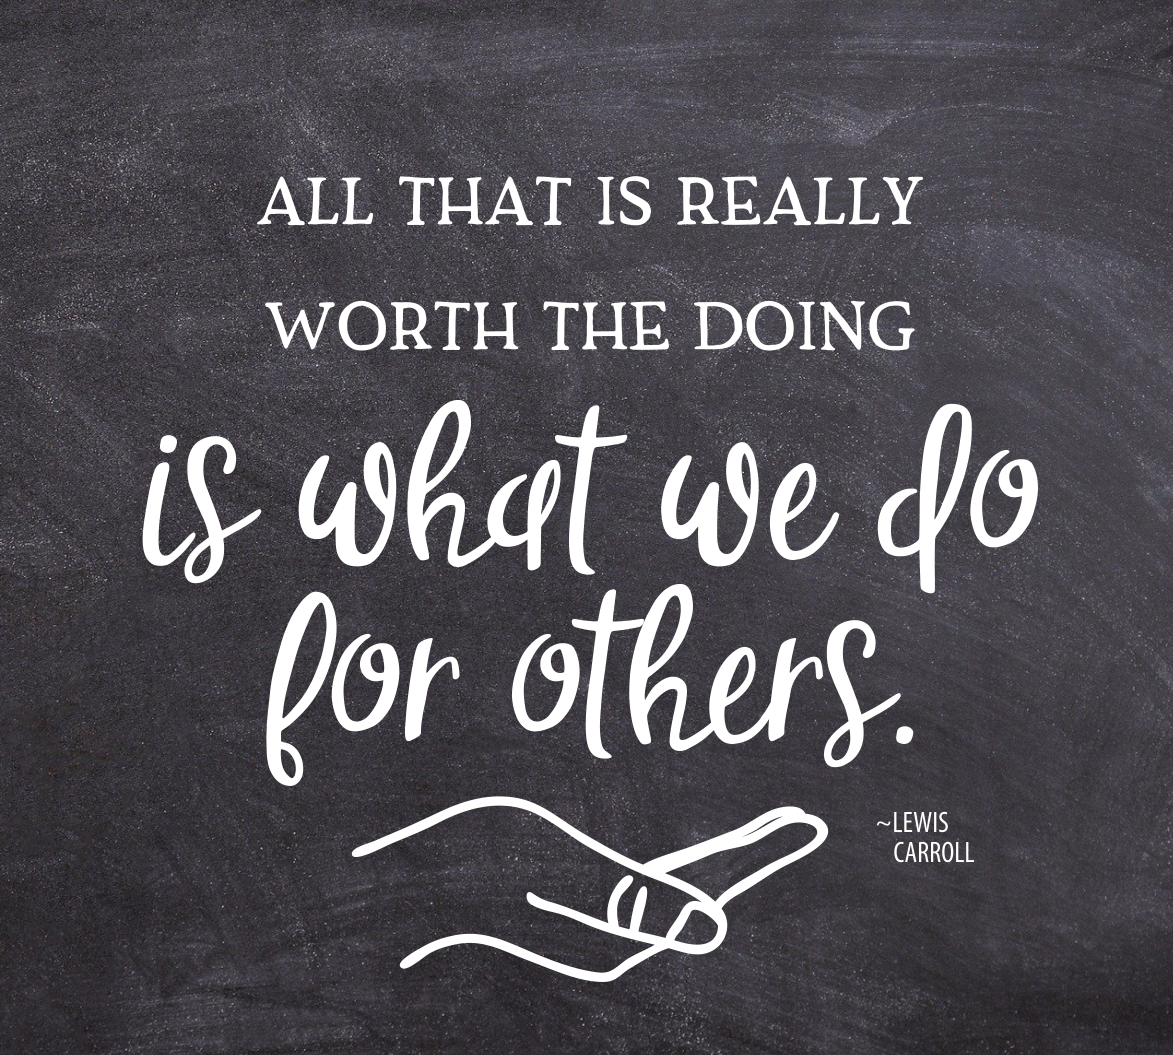 doing for others quote graphic